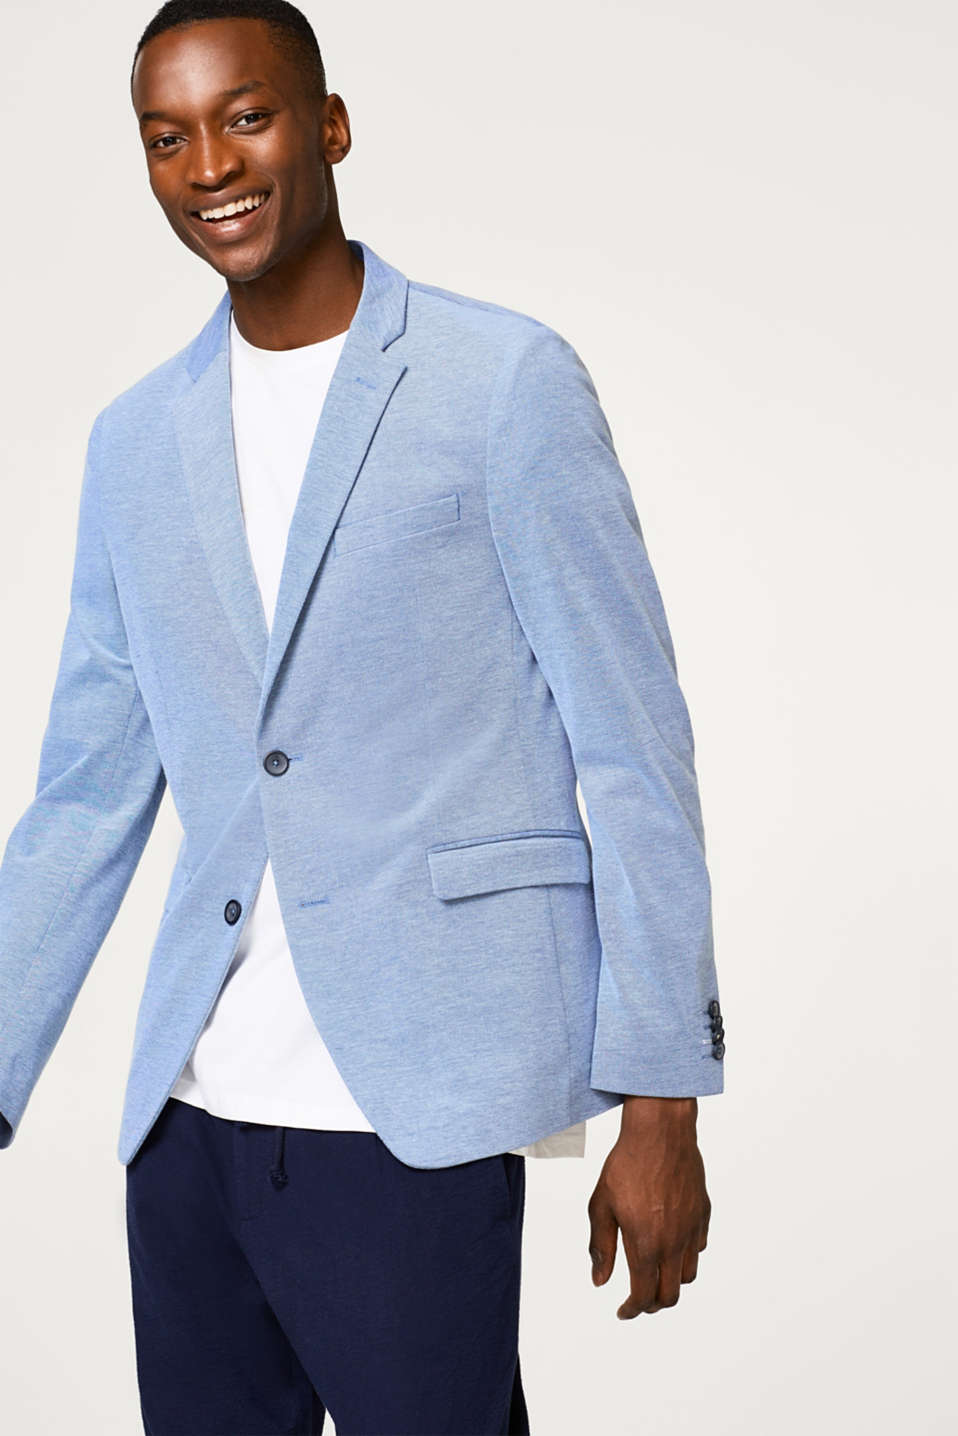 Esprit - Lightweight tailored summer jacket in a cotton blend